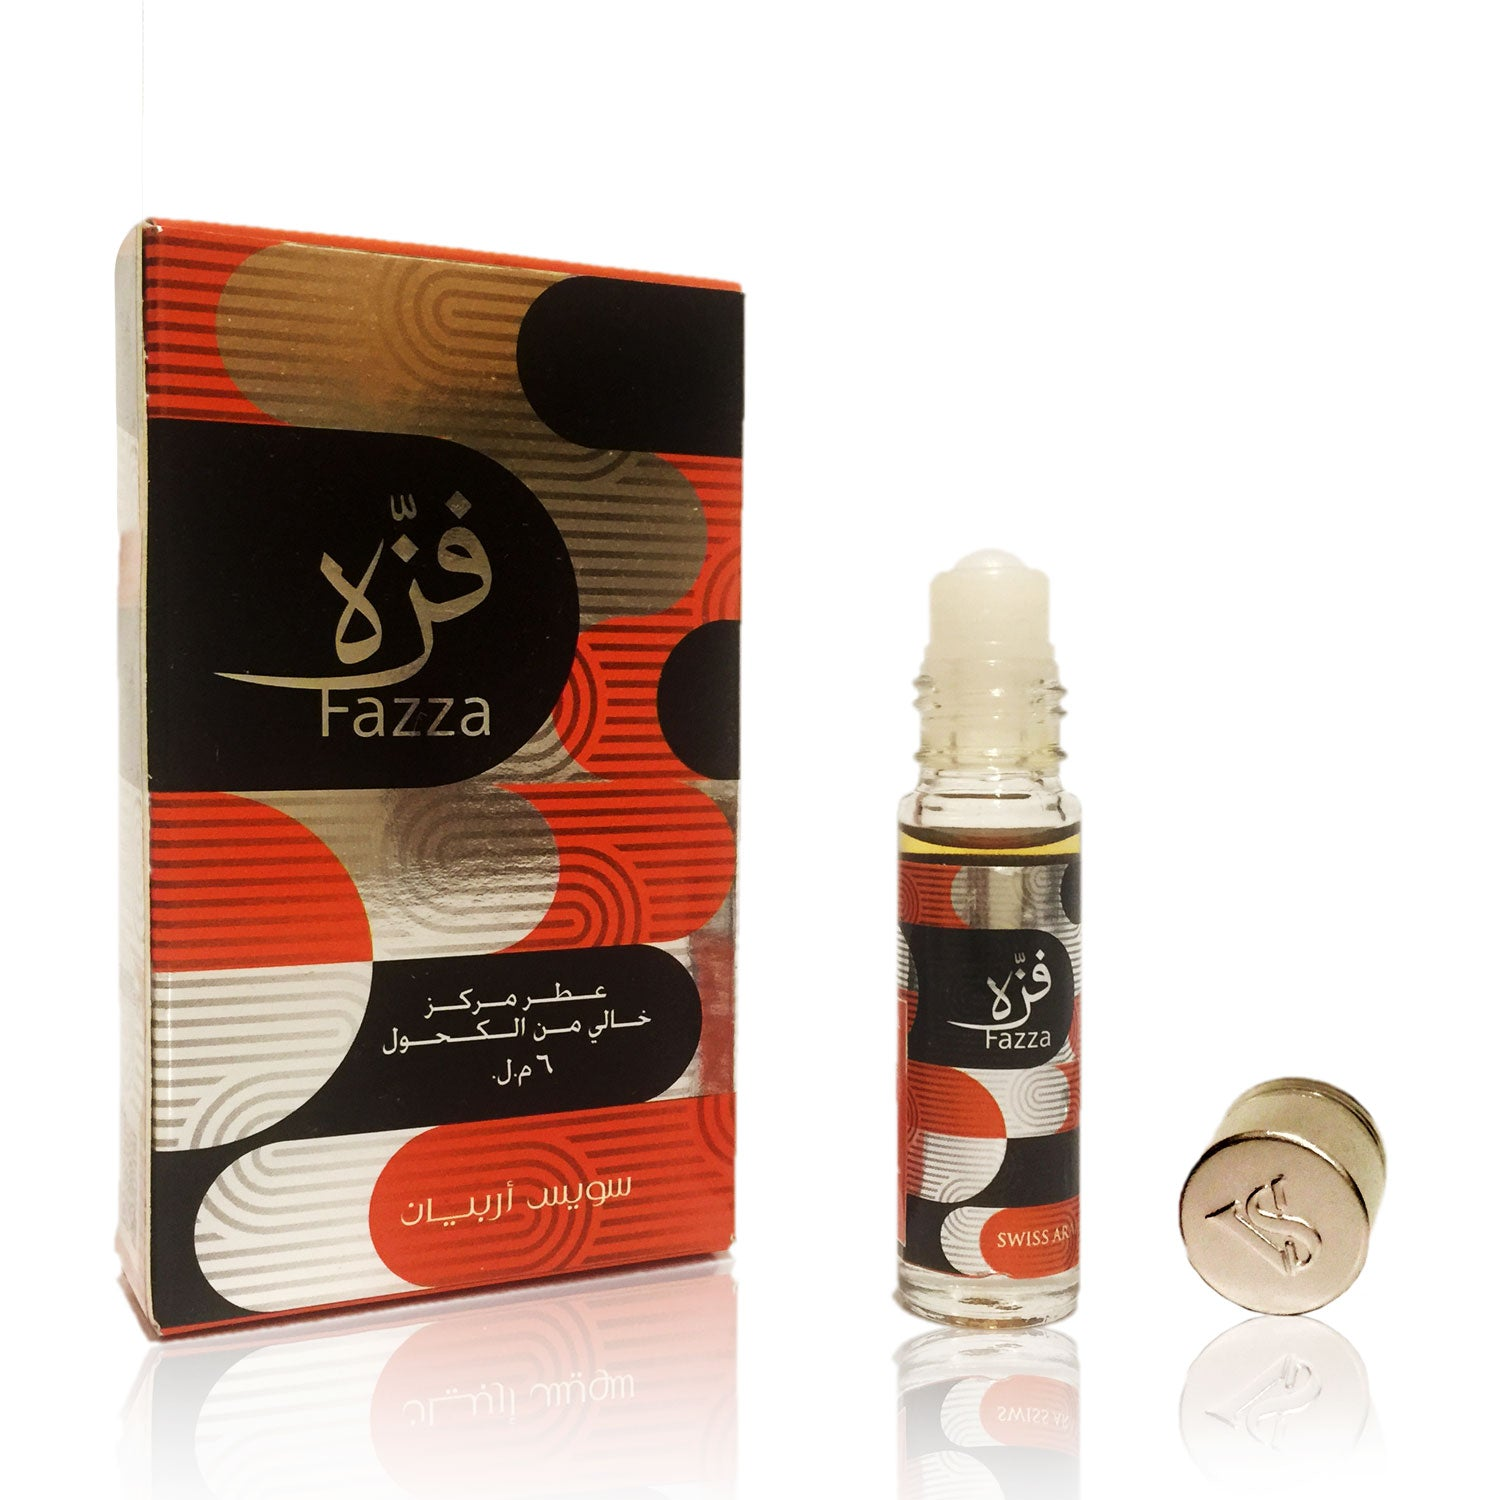 FAZZA, Roll On Perfume Oil 6 mL (.2 oz) | Floral, Woody and Spicy